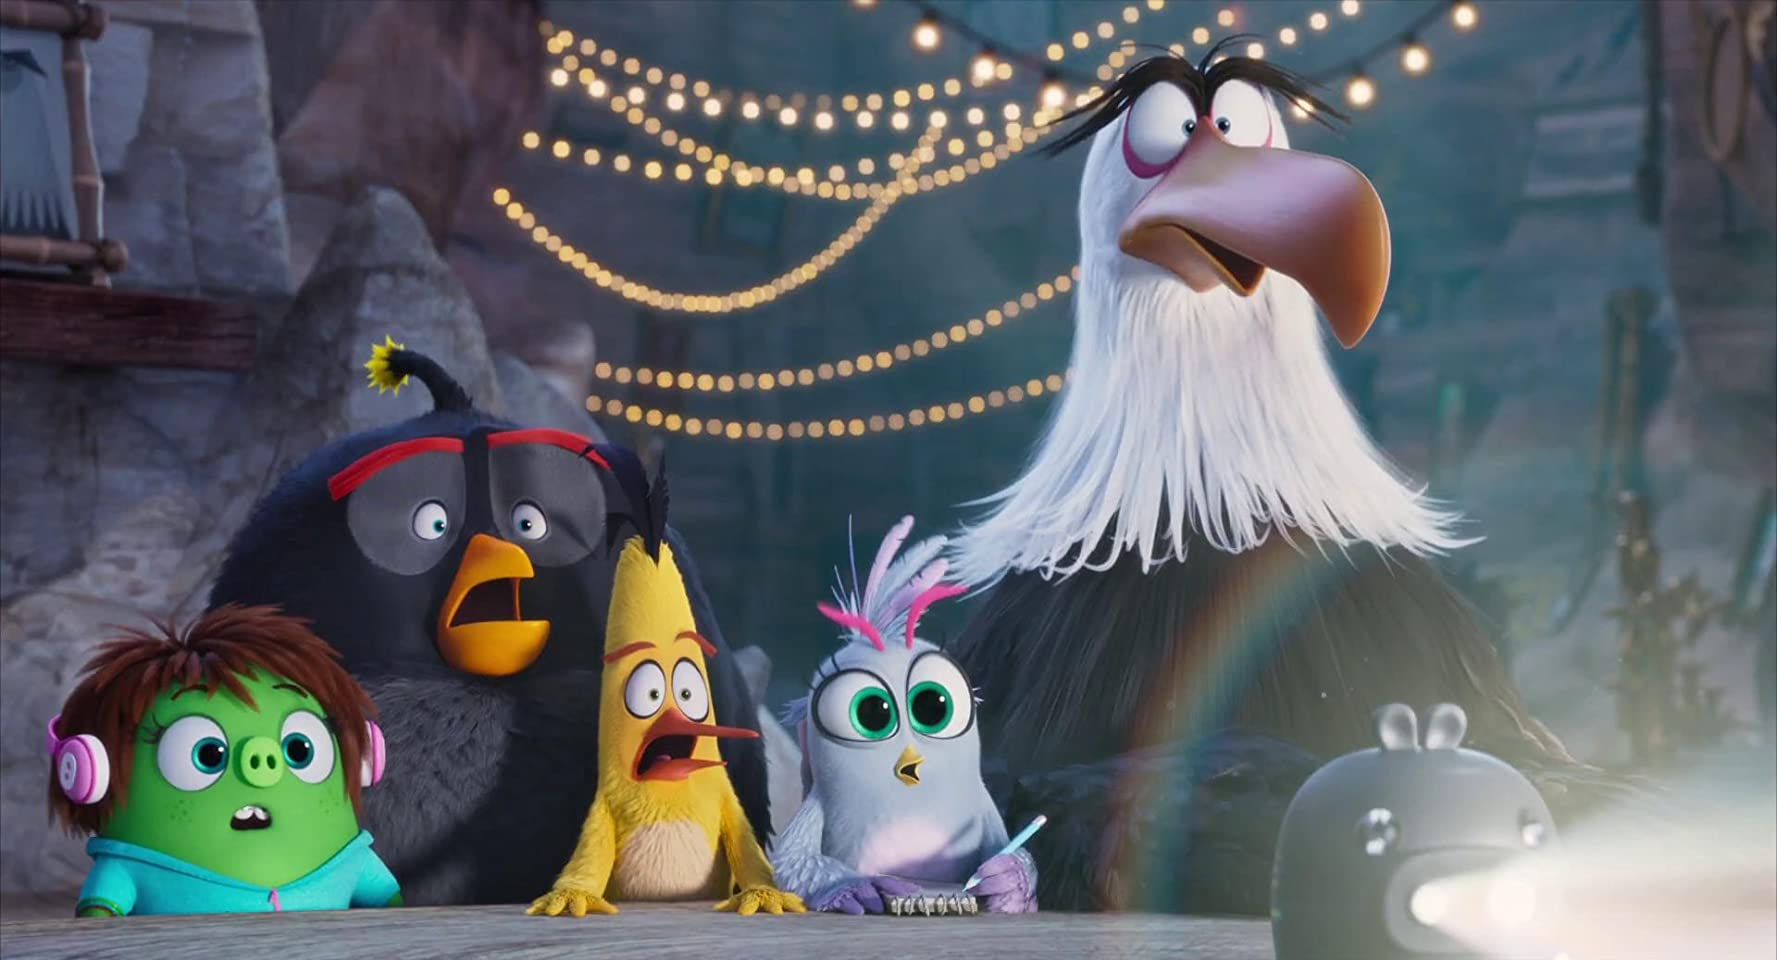 Peter Dinklage, Danny McBride, Josh Gad, Rachel Bloom, and Awkwafina in The Angry Birds Movie 2 (2019)